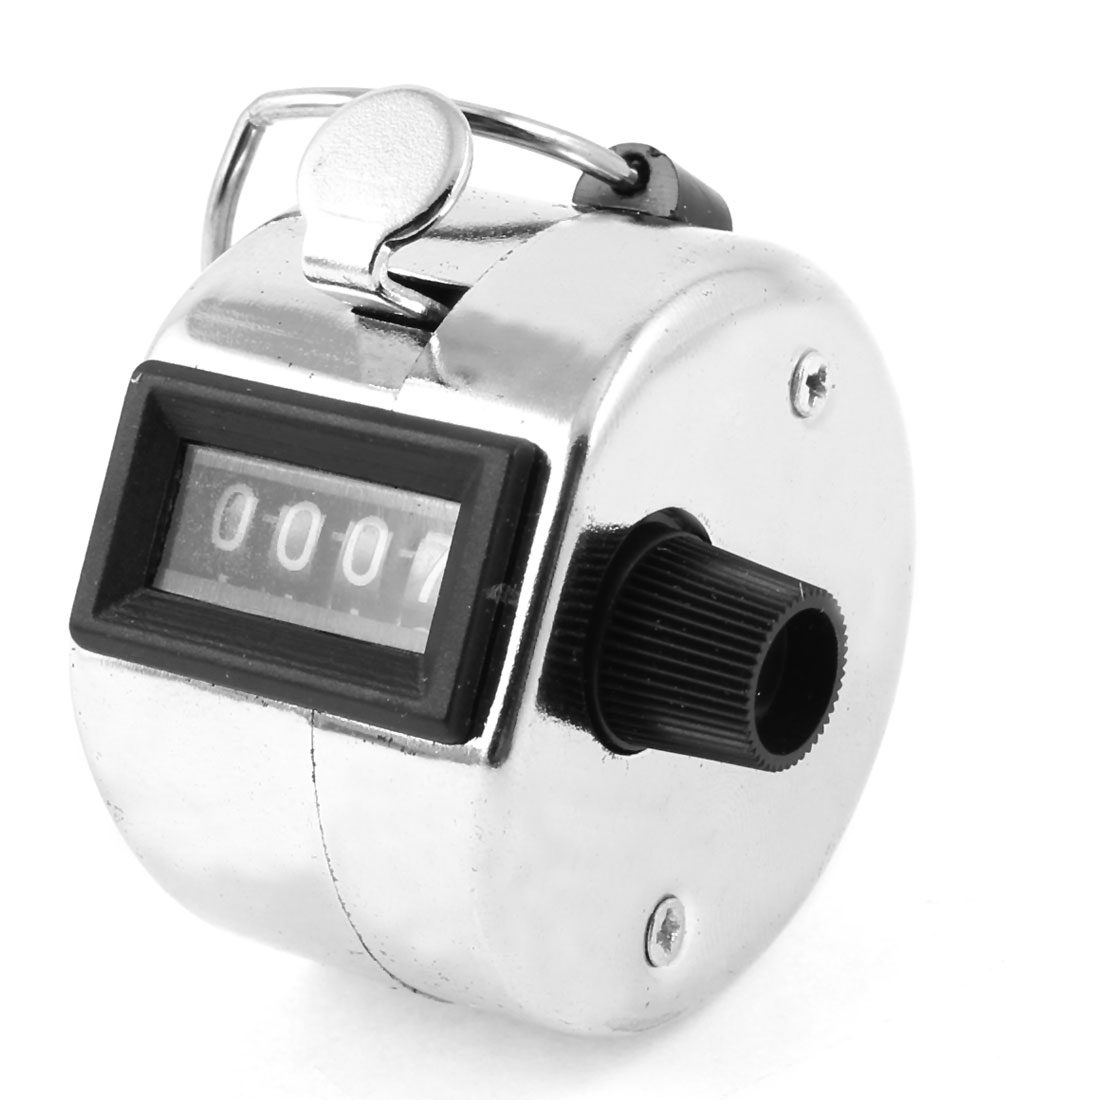 Silver Tone Case Reset Knob 4 Digits Hand Tally Counter w Finger Ring